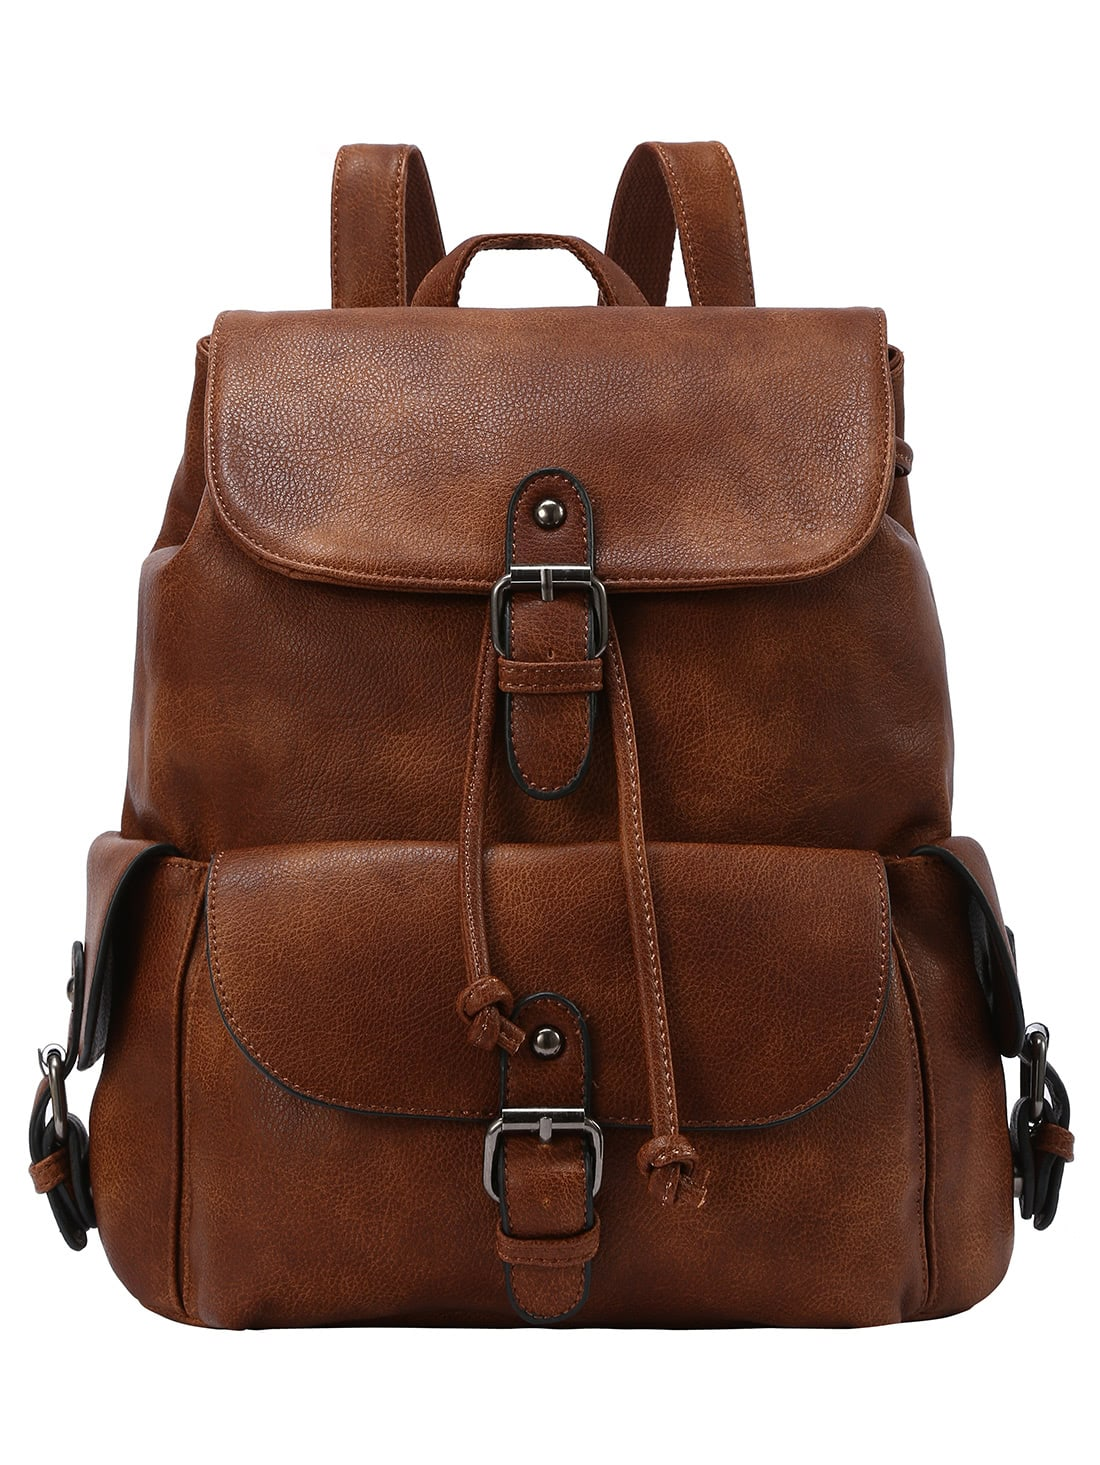 50886deae4 Buckled Flap Drawstring Backpack - Brown   SHEIN